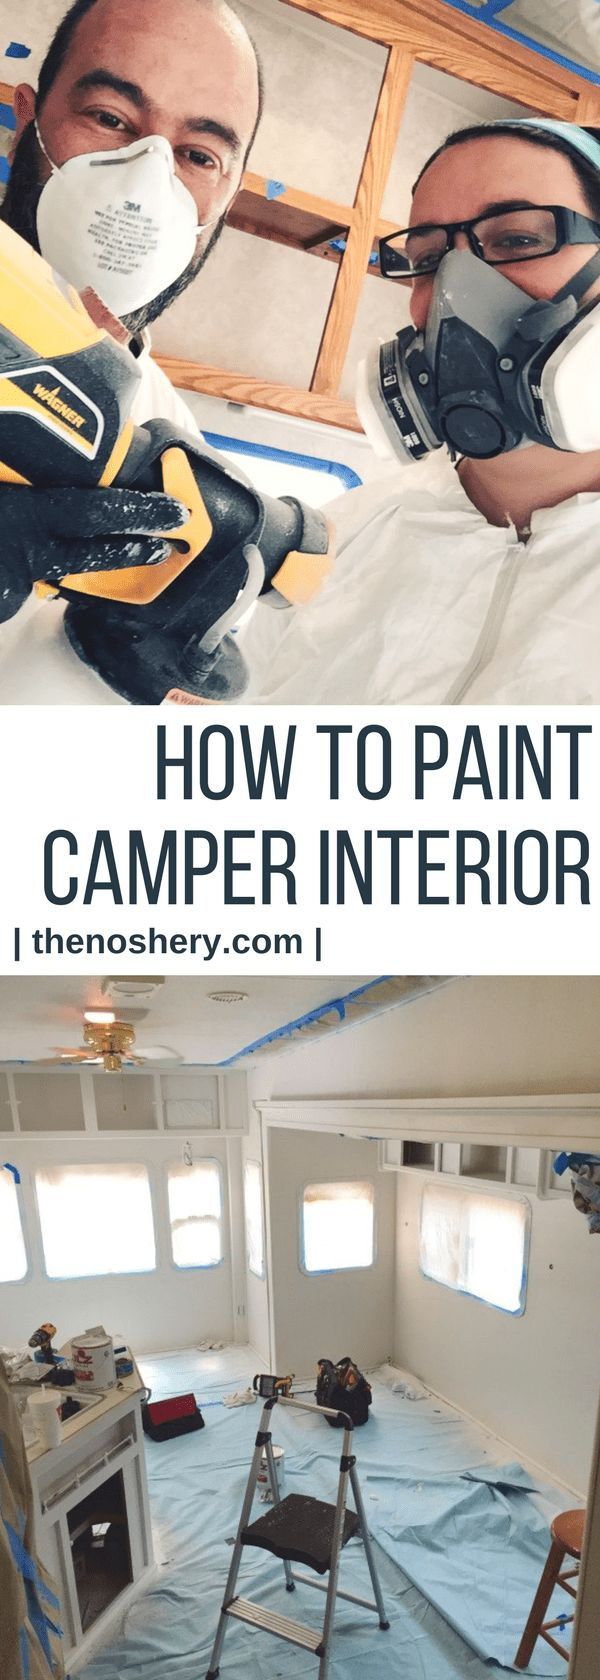 How to Paint Camper Interior |  Learn how to paint camper interior and bring and old camper back to life. | The Noshery